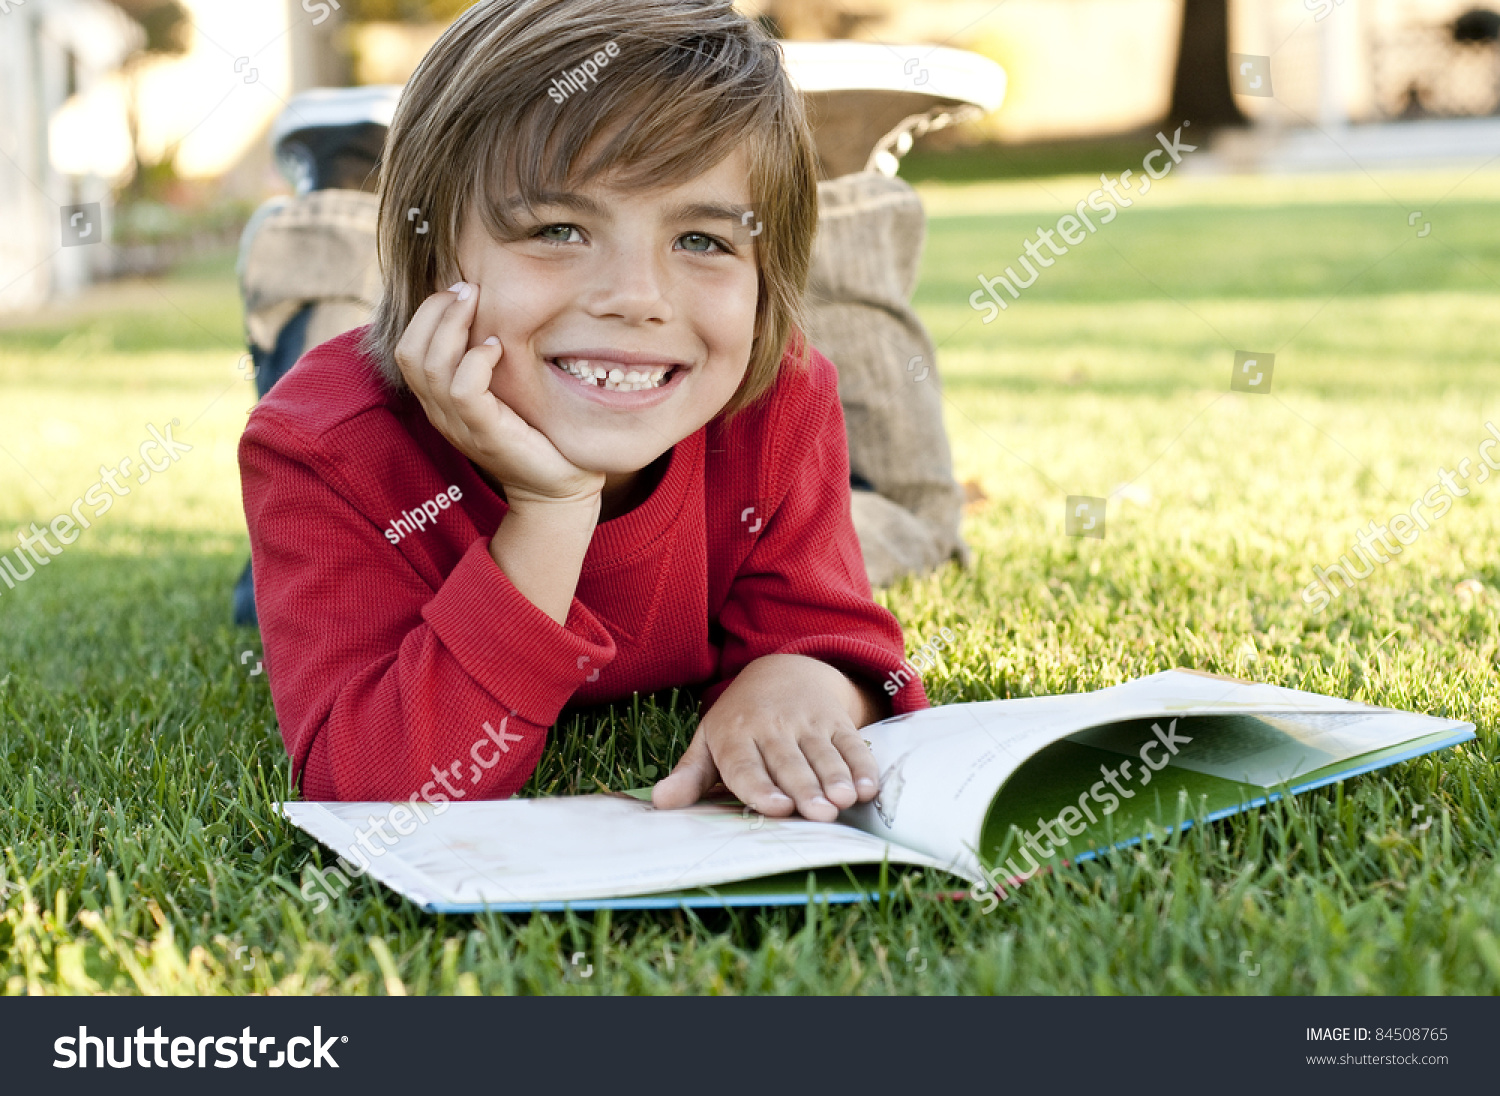 Very Cute 7 Year Old Boy Lying On The Grass Reading A Kids